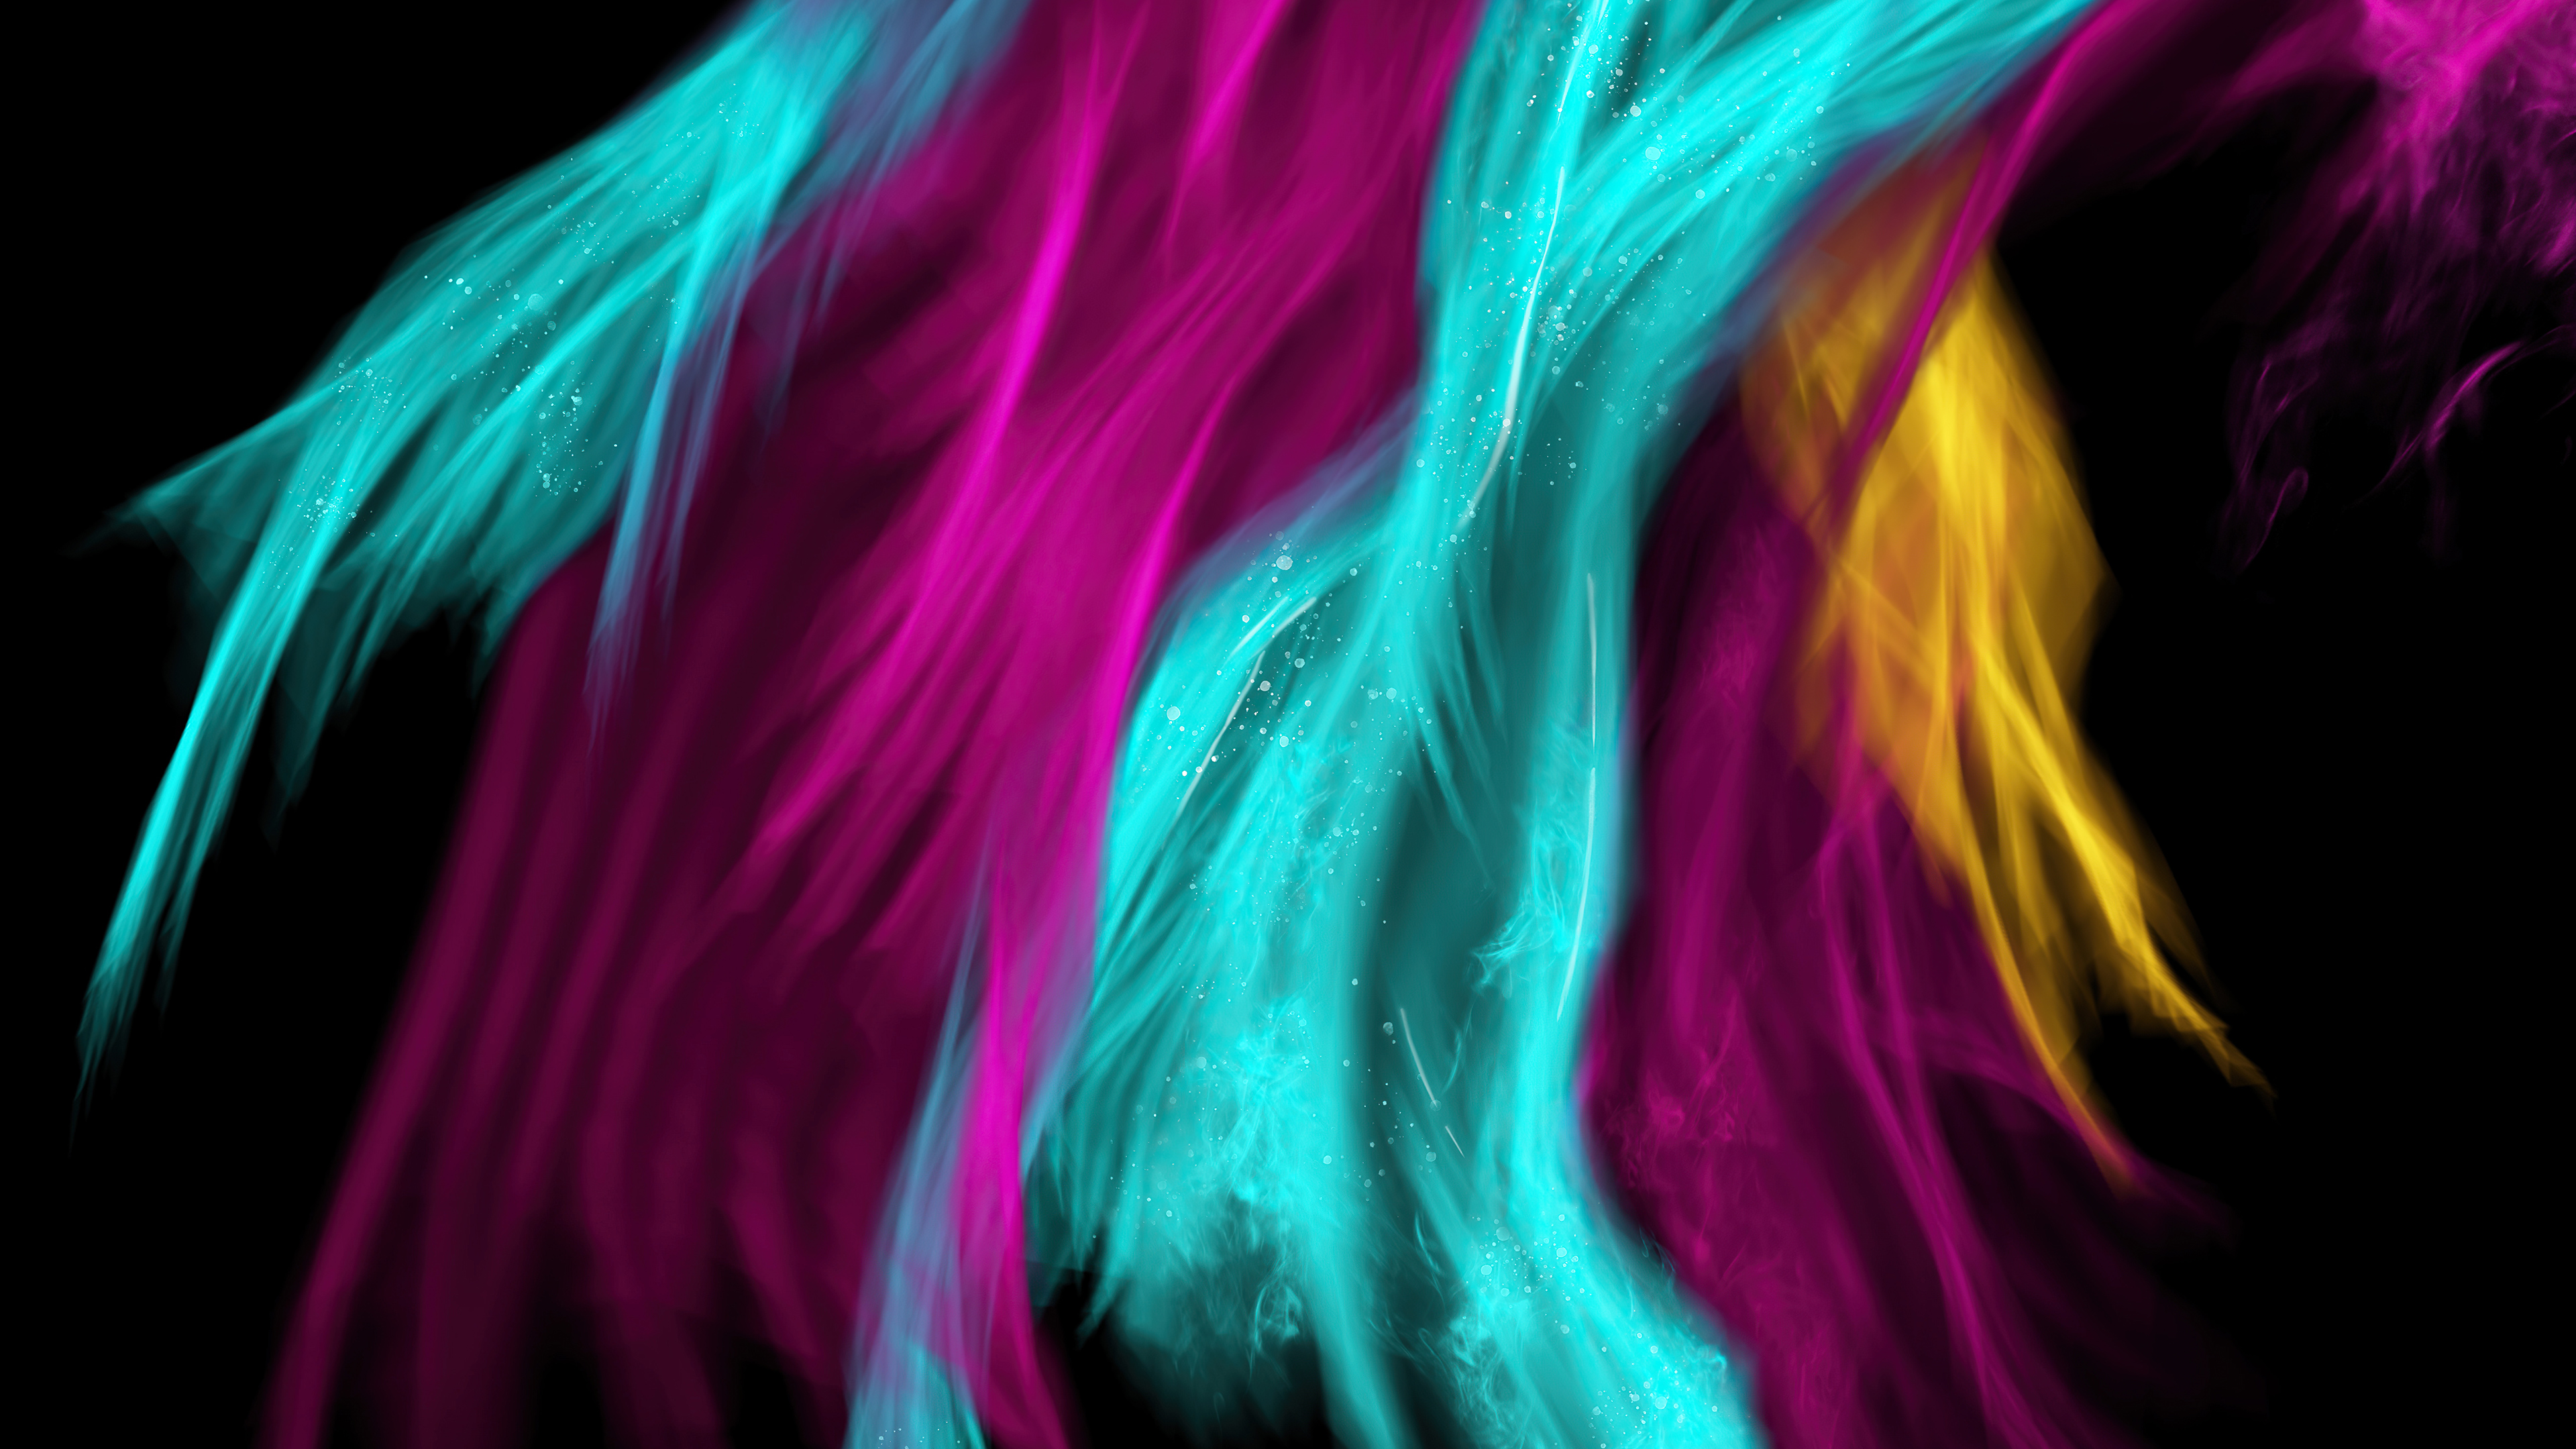 Wallpaper Colorful Feathers Abstract